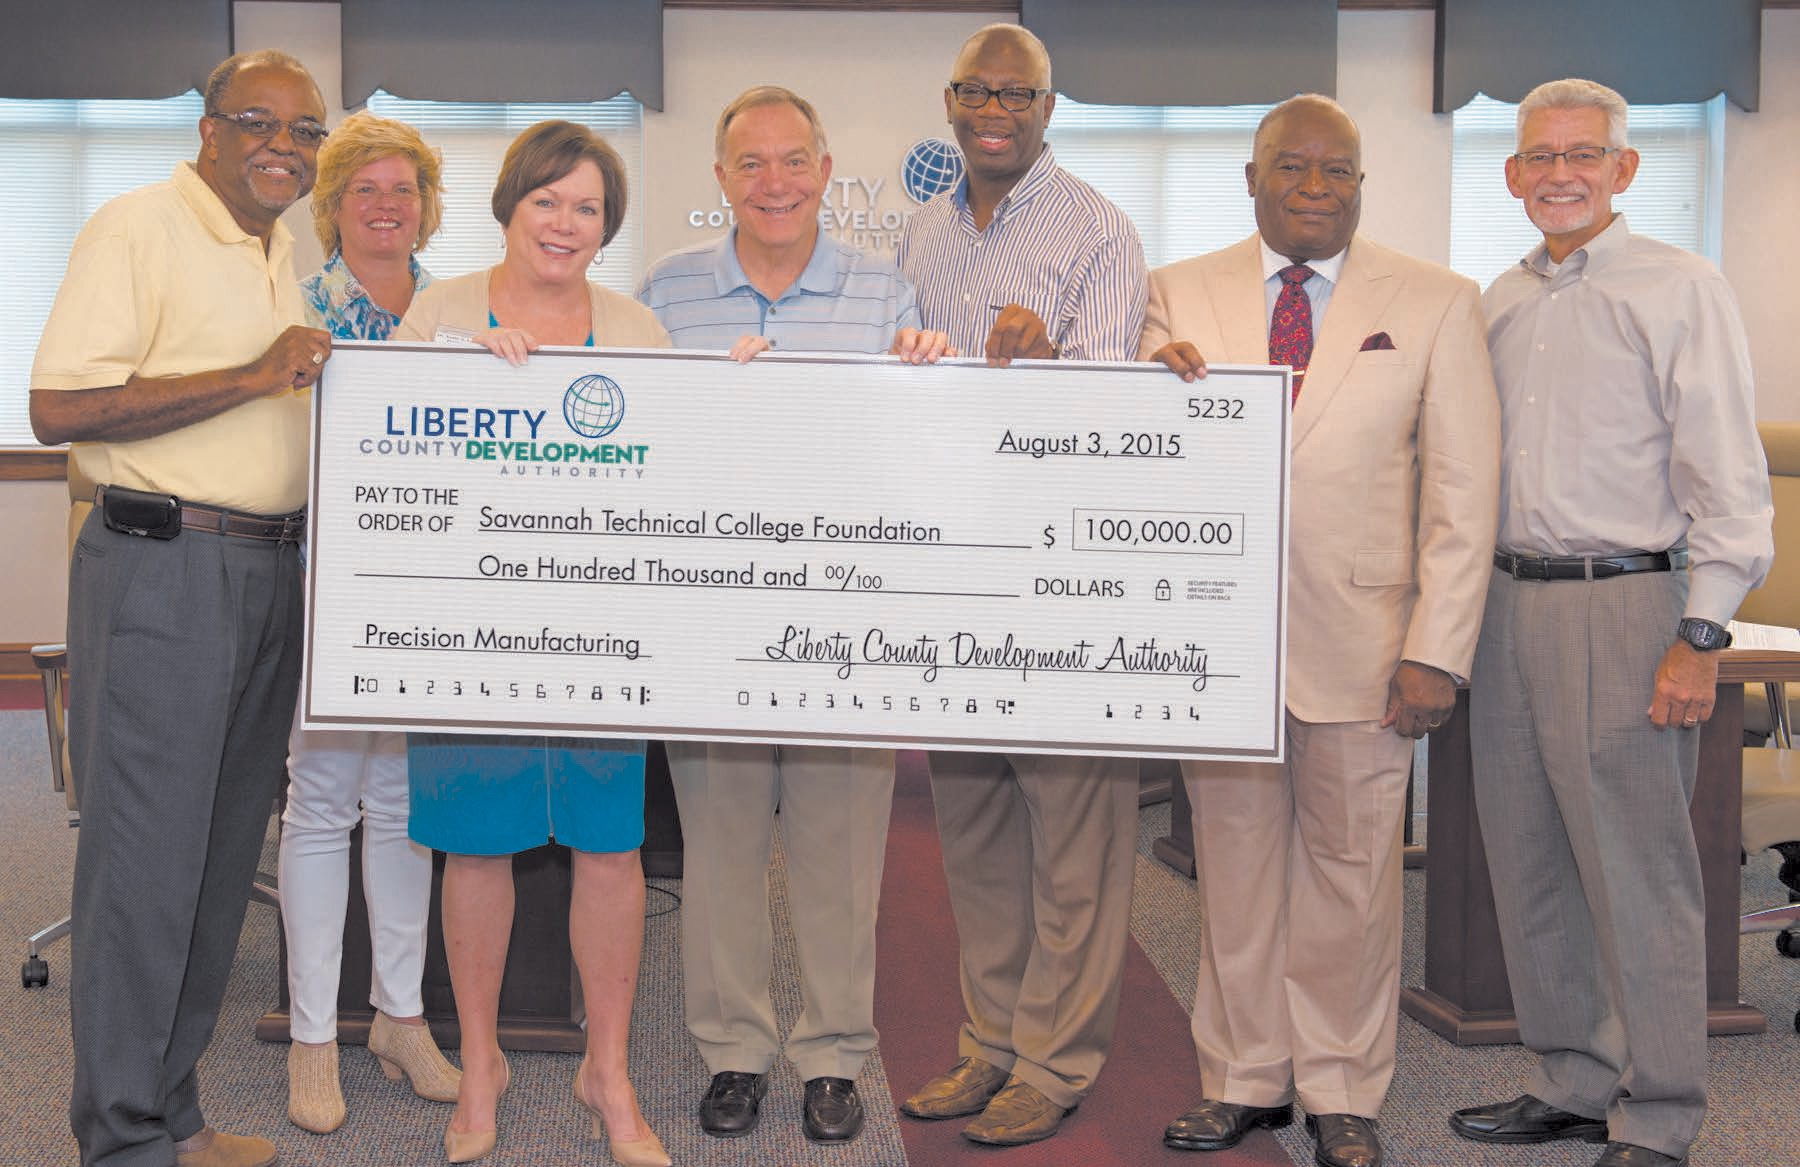 The Liberty County Development Authority approved a $100,000 pledge over five years to support the expansion of Precision Manufacturing training in Liberty County. STC President Dr. Kathy Love stands with LCDA board members.